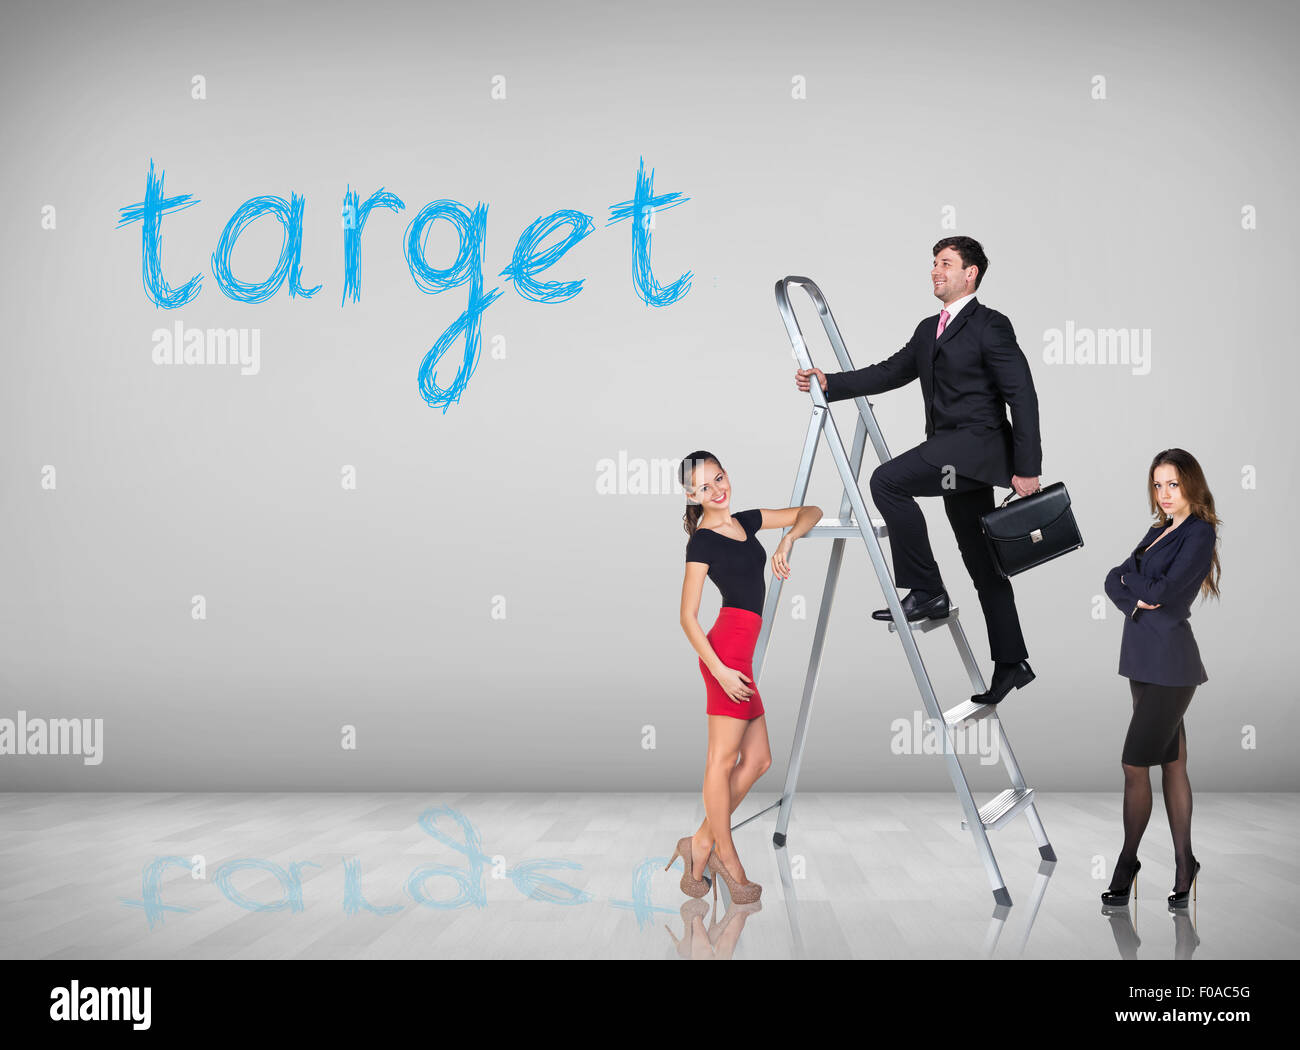 Businessman With Woman Assistant Climbing A Ladder With Motivation